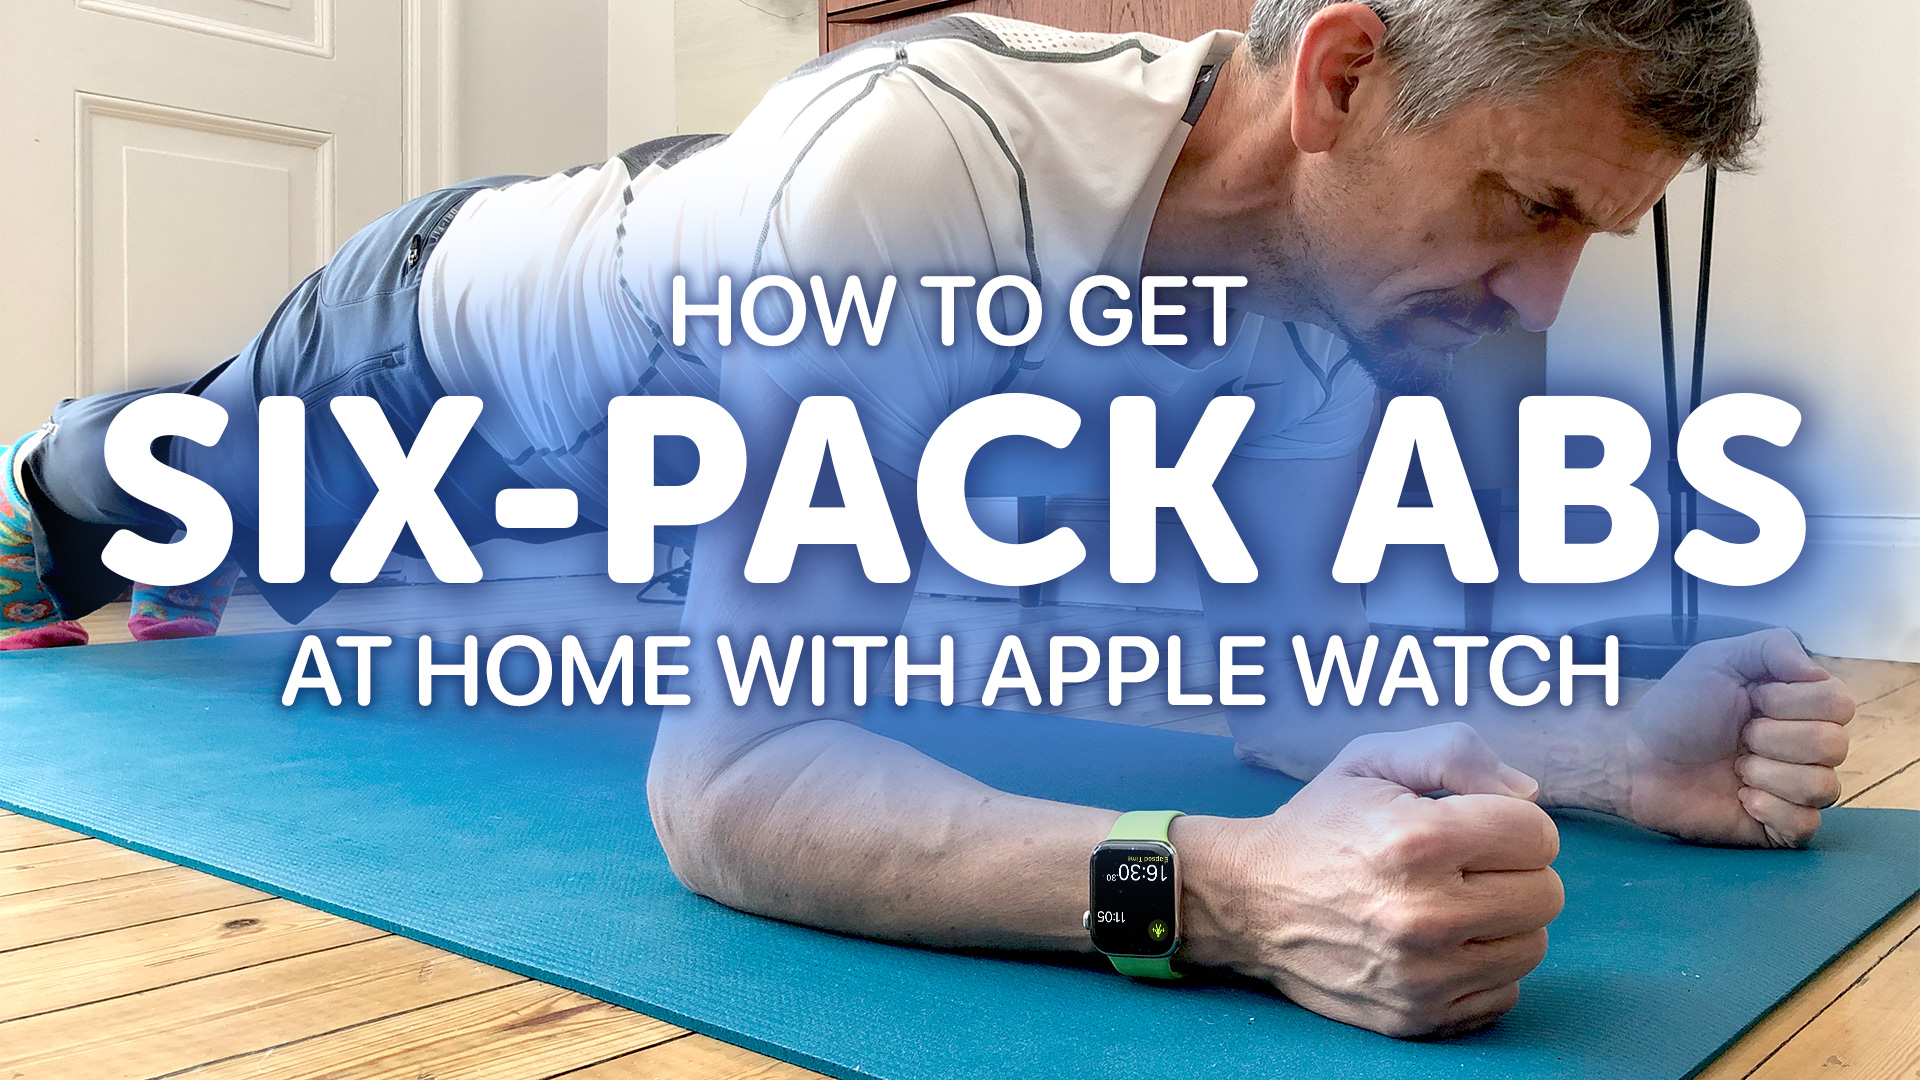 How to get six-pack abs with Apple Watch